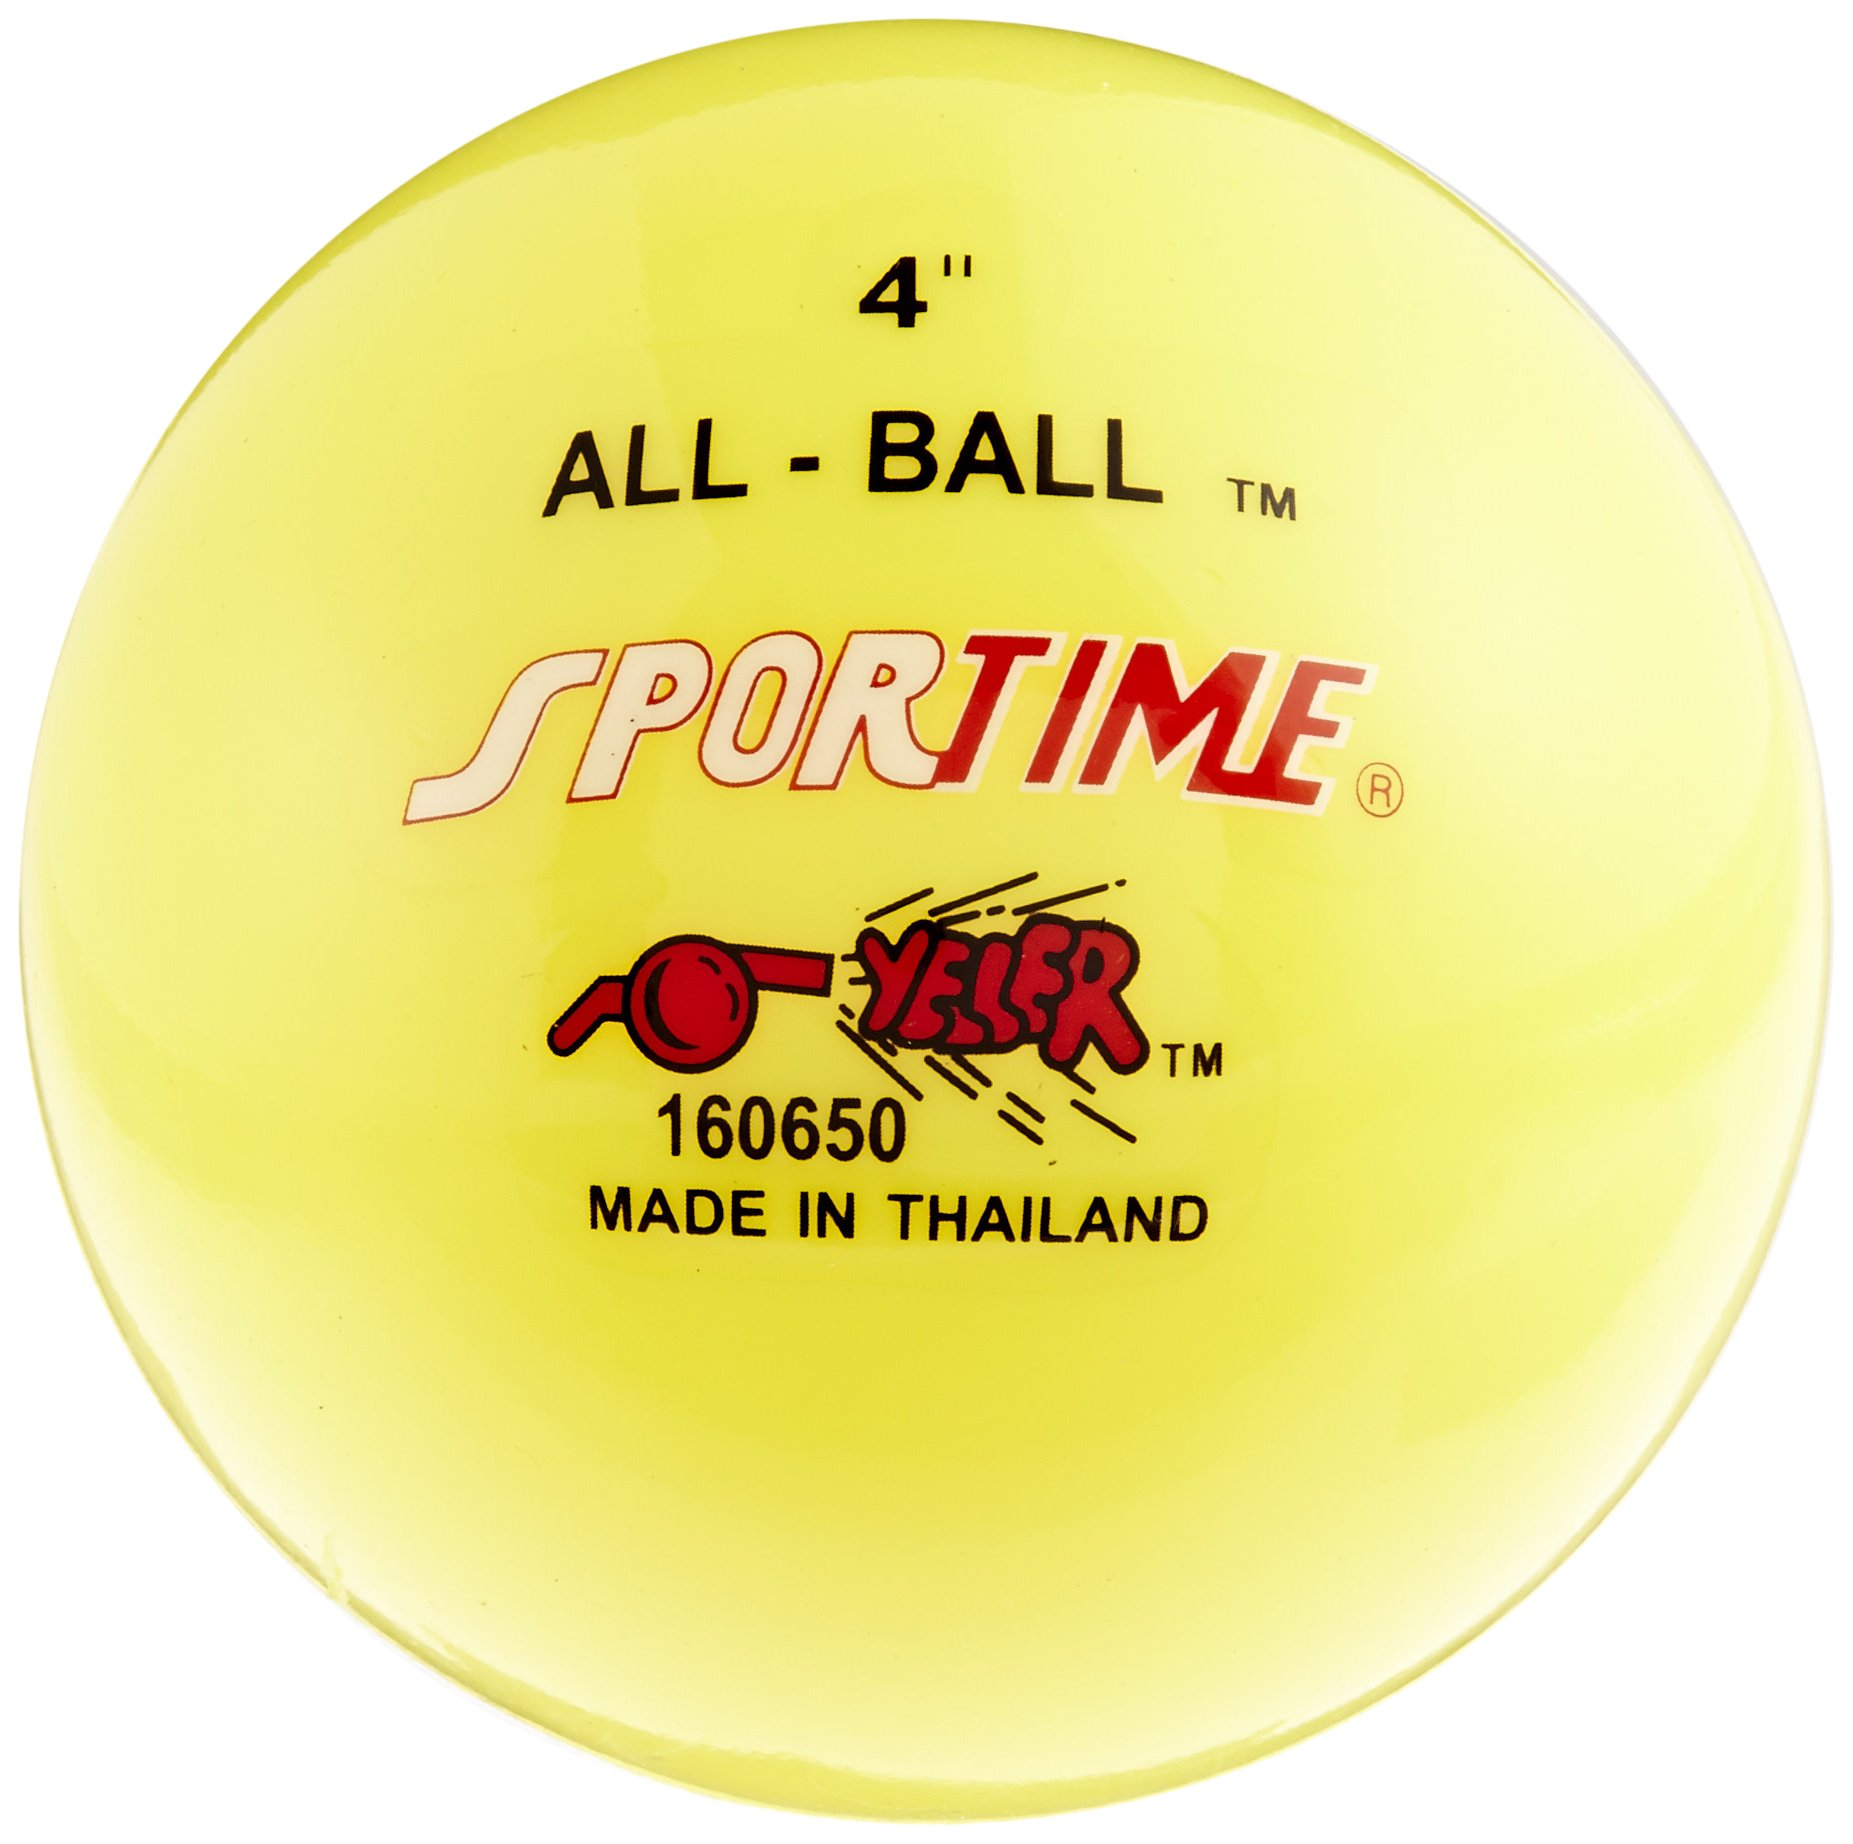 Sportime Multi-Purpose Inflatable Balls, 4 Inches, Yellow, Pack of 12